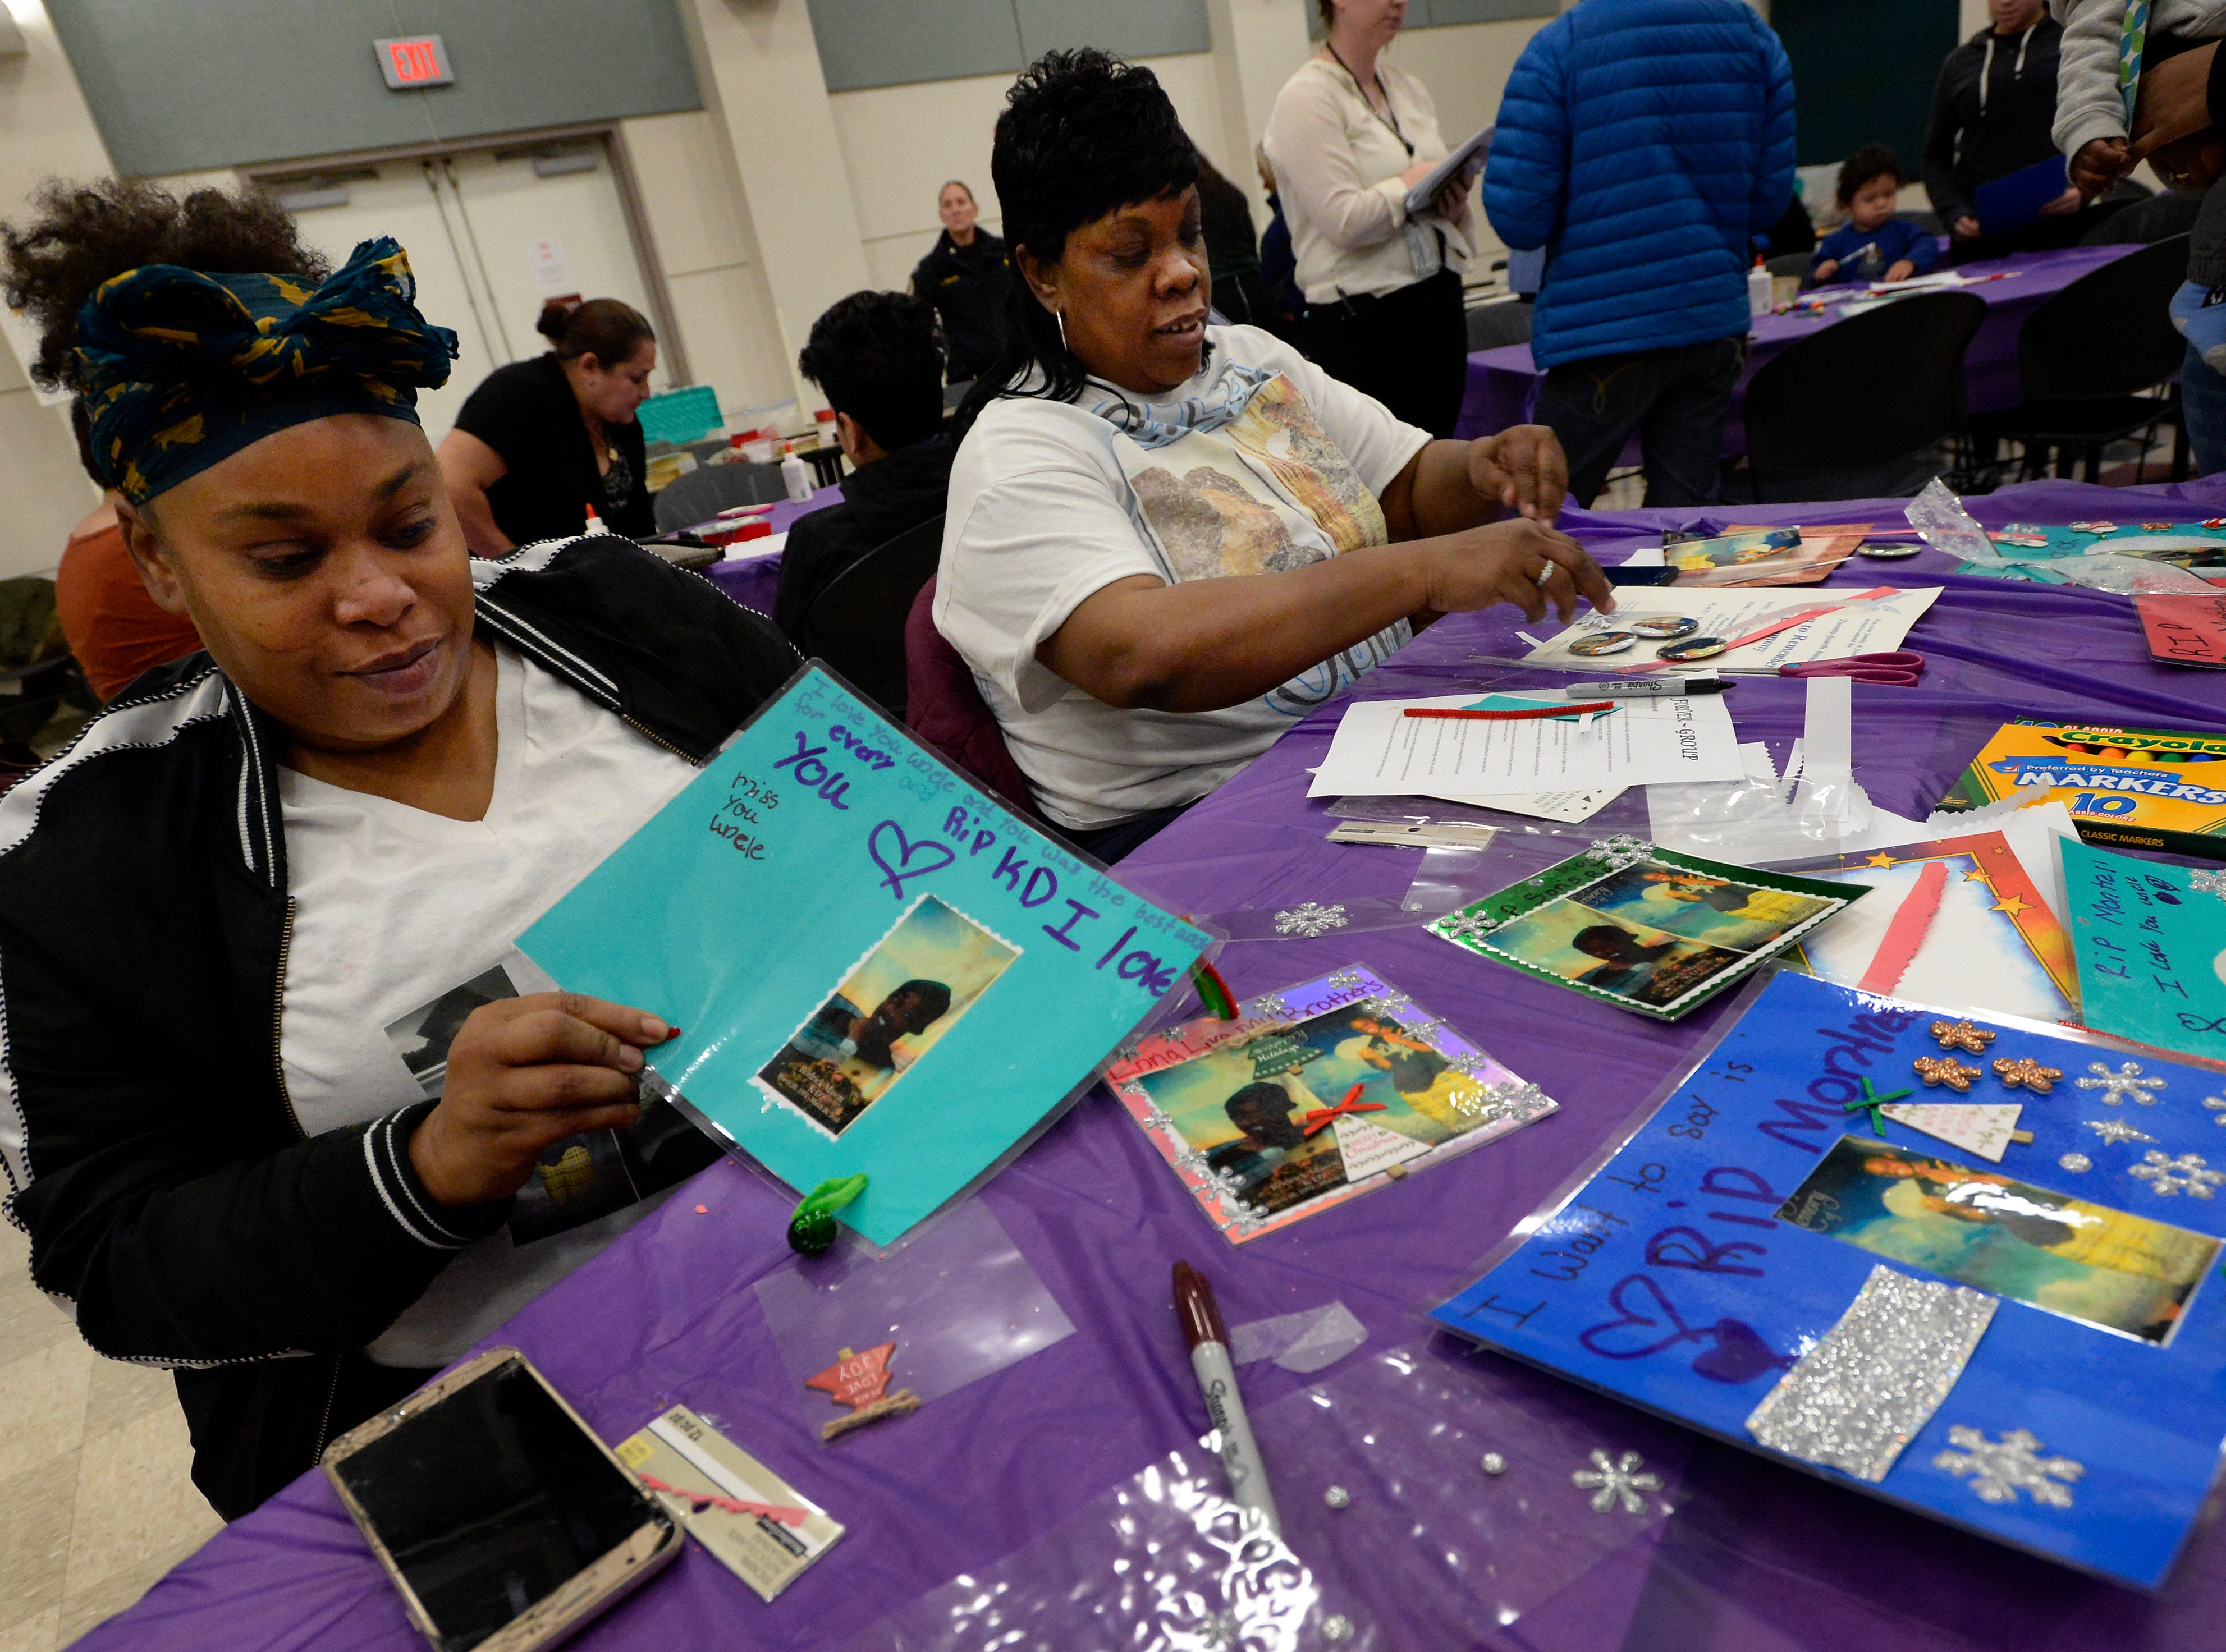 Roketa Mason and her mother, Yolanda Mason, make Christmas ornaments at the Metro Police Department's North Precinct on Tuesday, Dec. 11, 2018, in Nashville, Tenn. Yolanda Mason's sons, Montrell Mason and Rodrick Mason were homicide victims. The police department hosted the Victim Intervention Program to help families cope during the holidays.